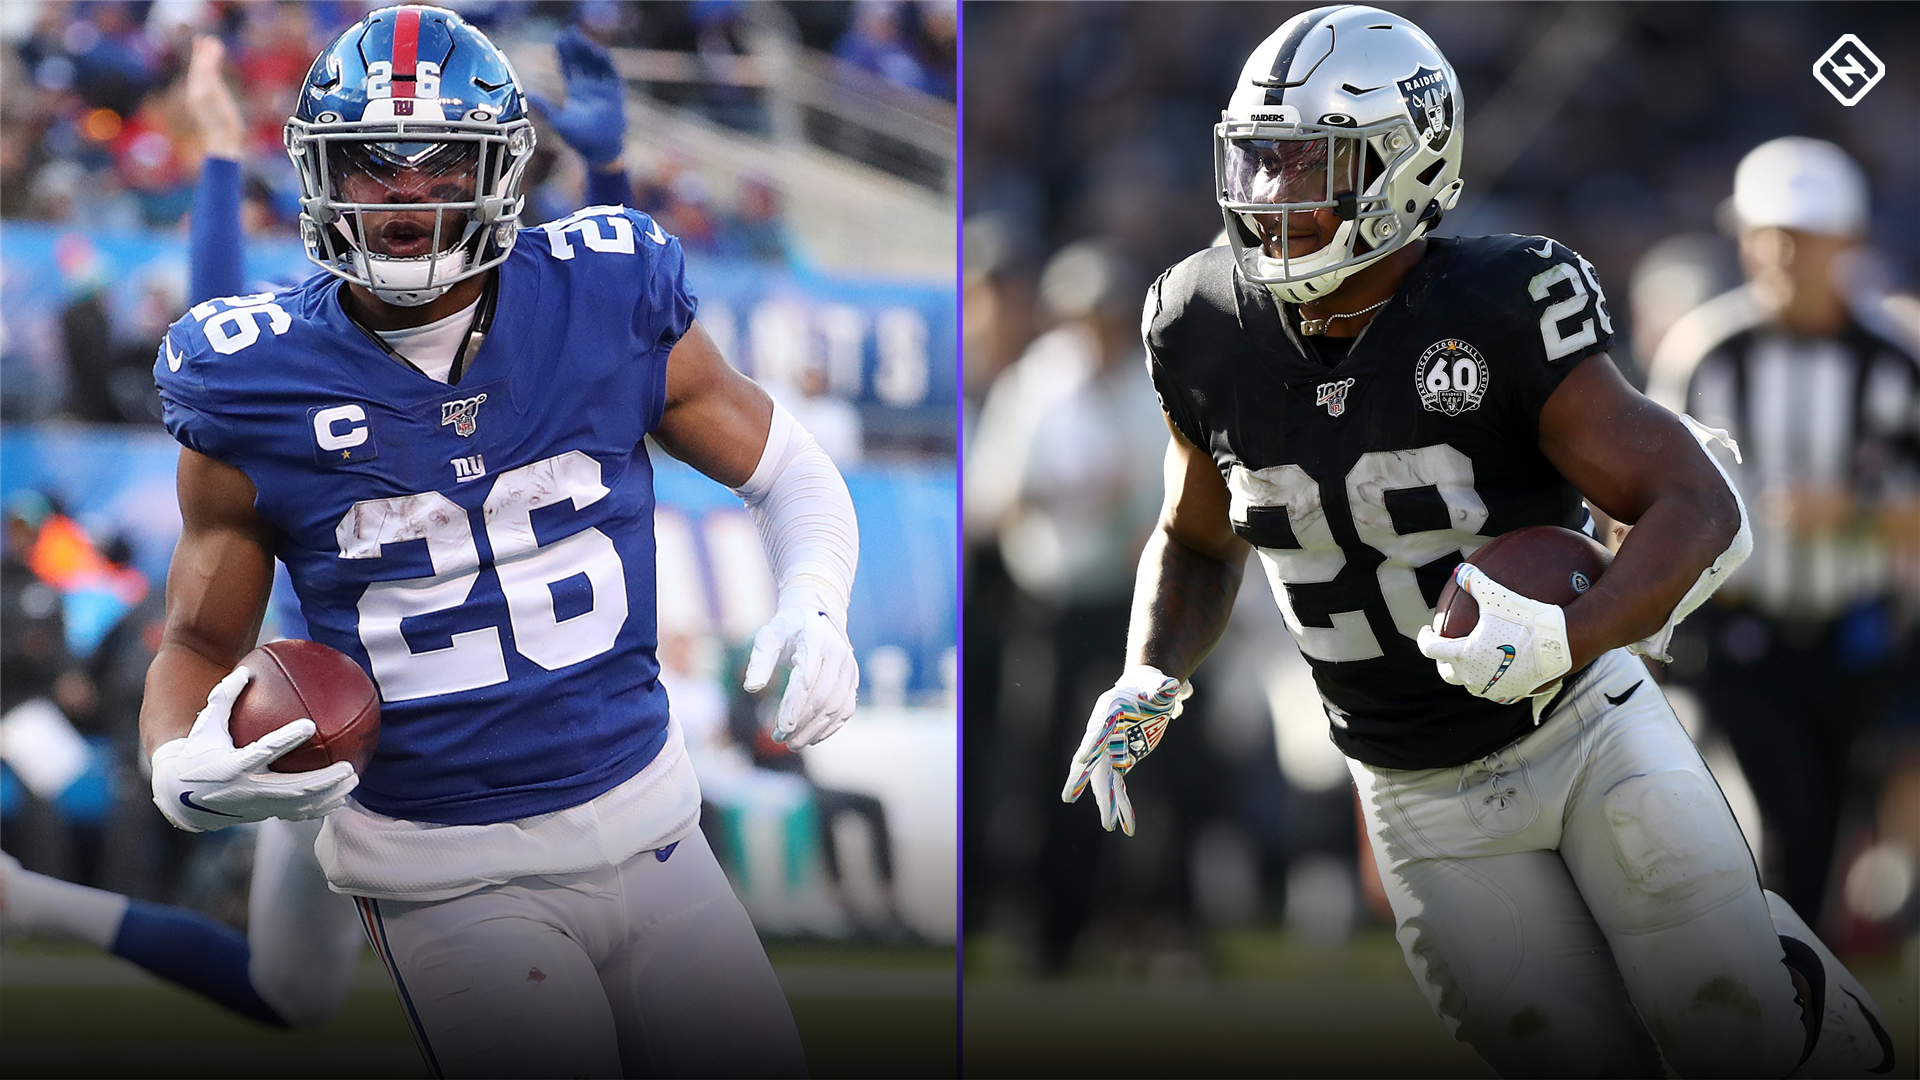 Updated 2020 Fantasy Football RB Rankings: Christian McCaffrey, Saquon Barkley lead deep group of running backs 1